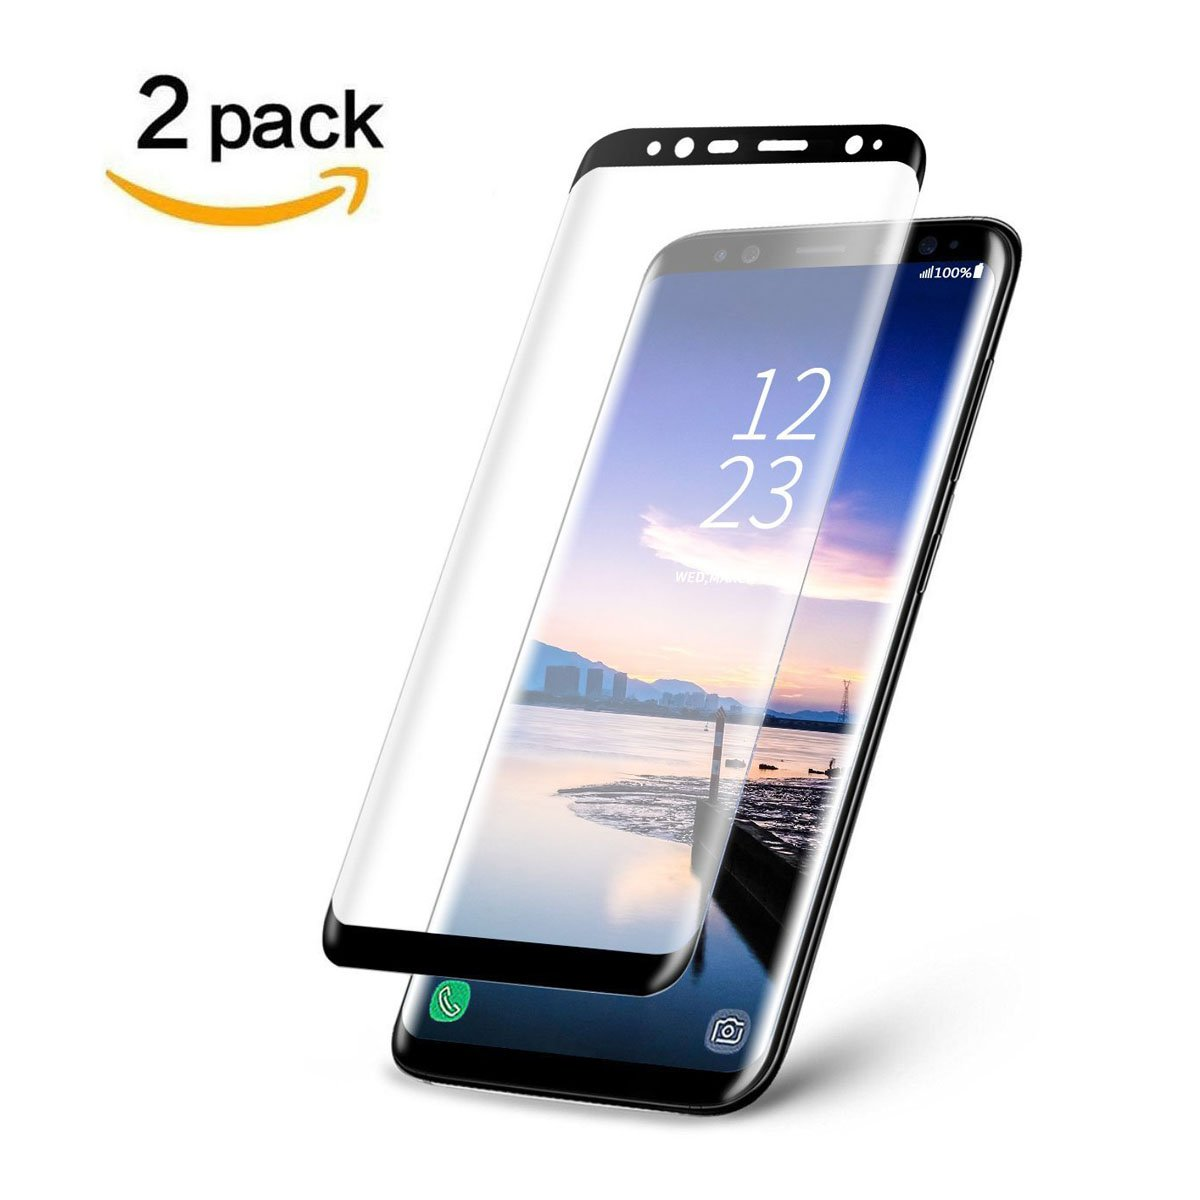 LEDitBe Galaxy S9 Screen Protector, Full Screen Tempered Glass Screen Protector Film, Edge to Edge Protection Screen Cover Saver Guard for 3D 9H Hardness Samsung Galaxy S9 Black by LEDitBe (Image #1)